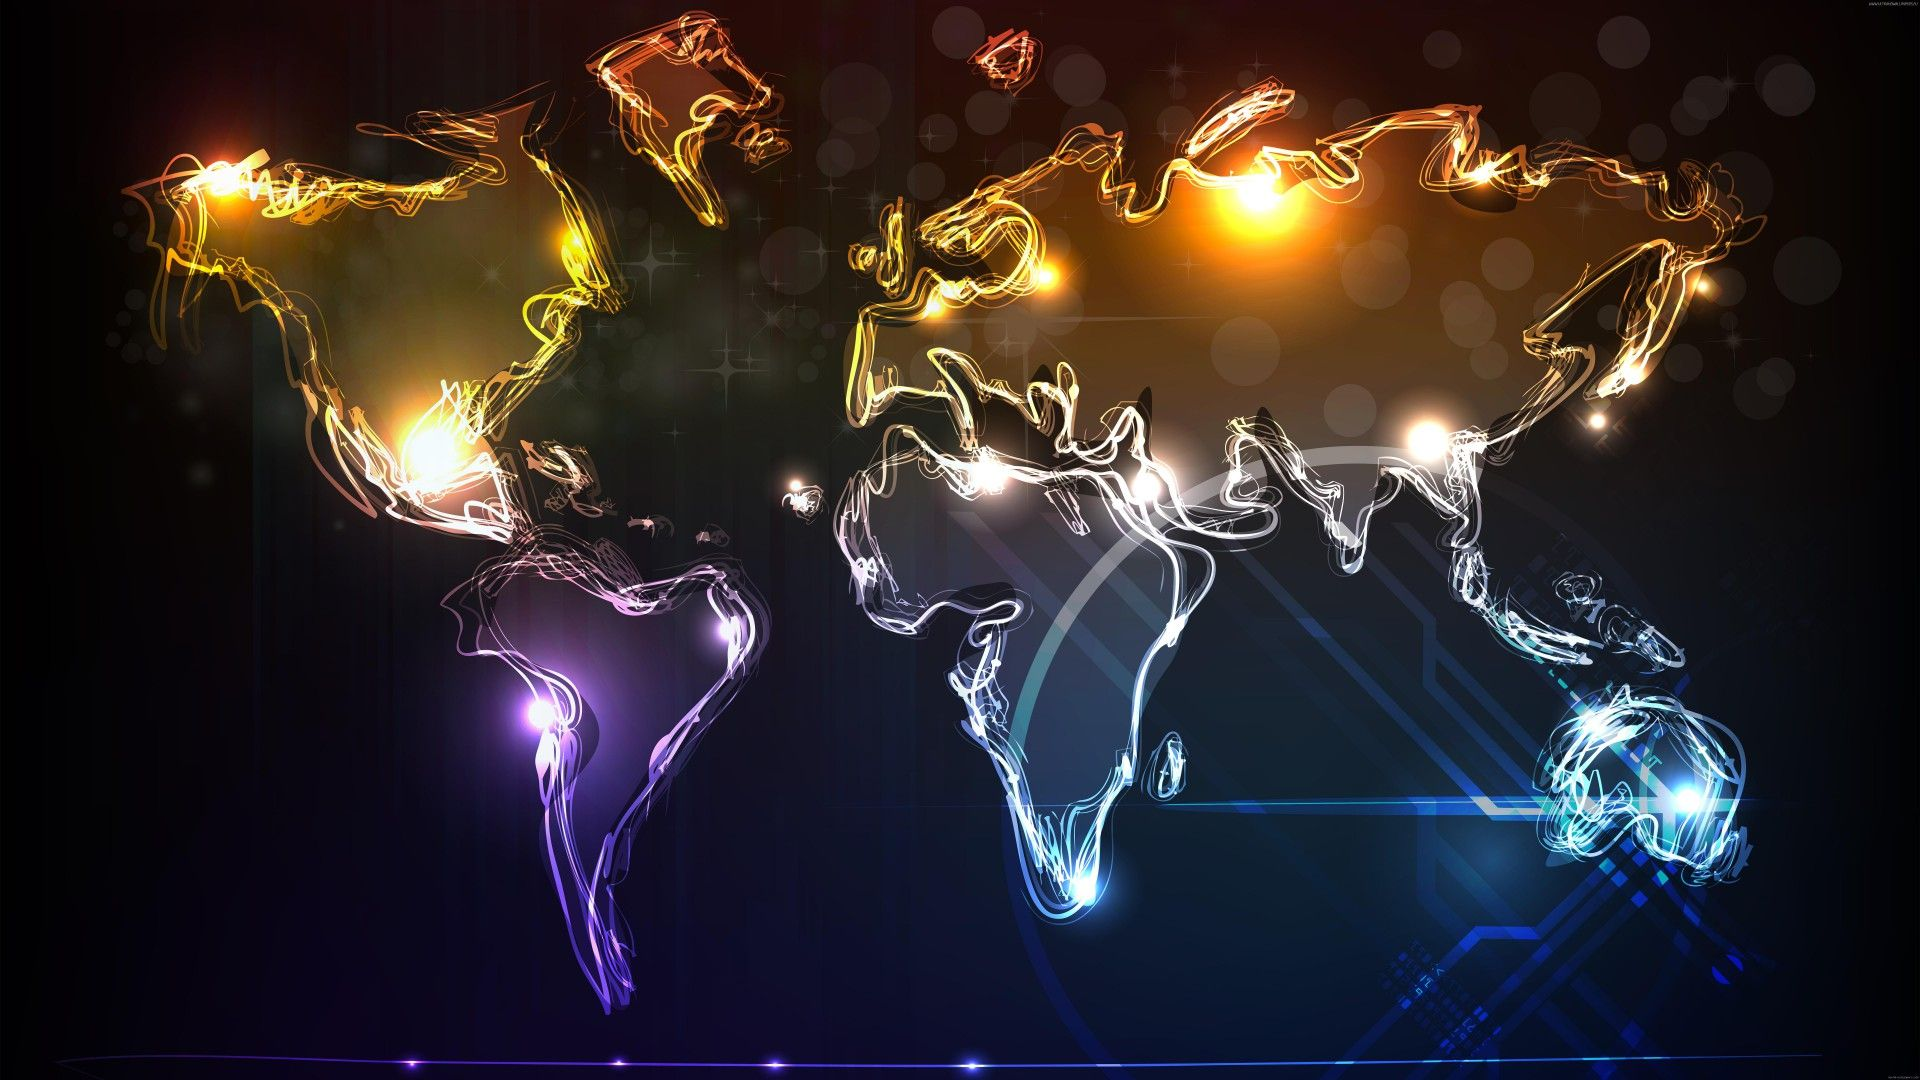 World Map Wallpaper Our Choice World Map Neon Lights World Map Wallpaper Digital Wallpaper 3840x2160 Wallpaper